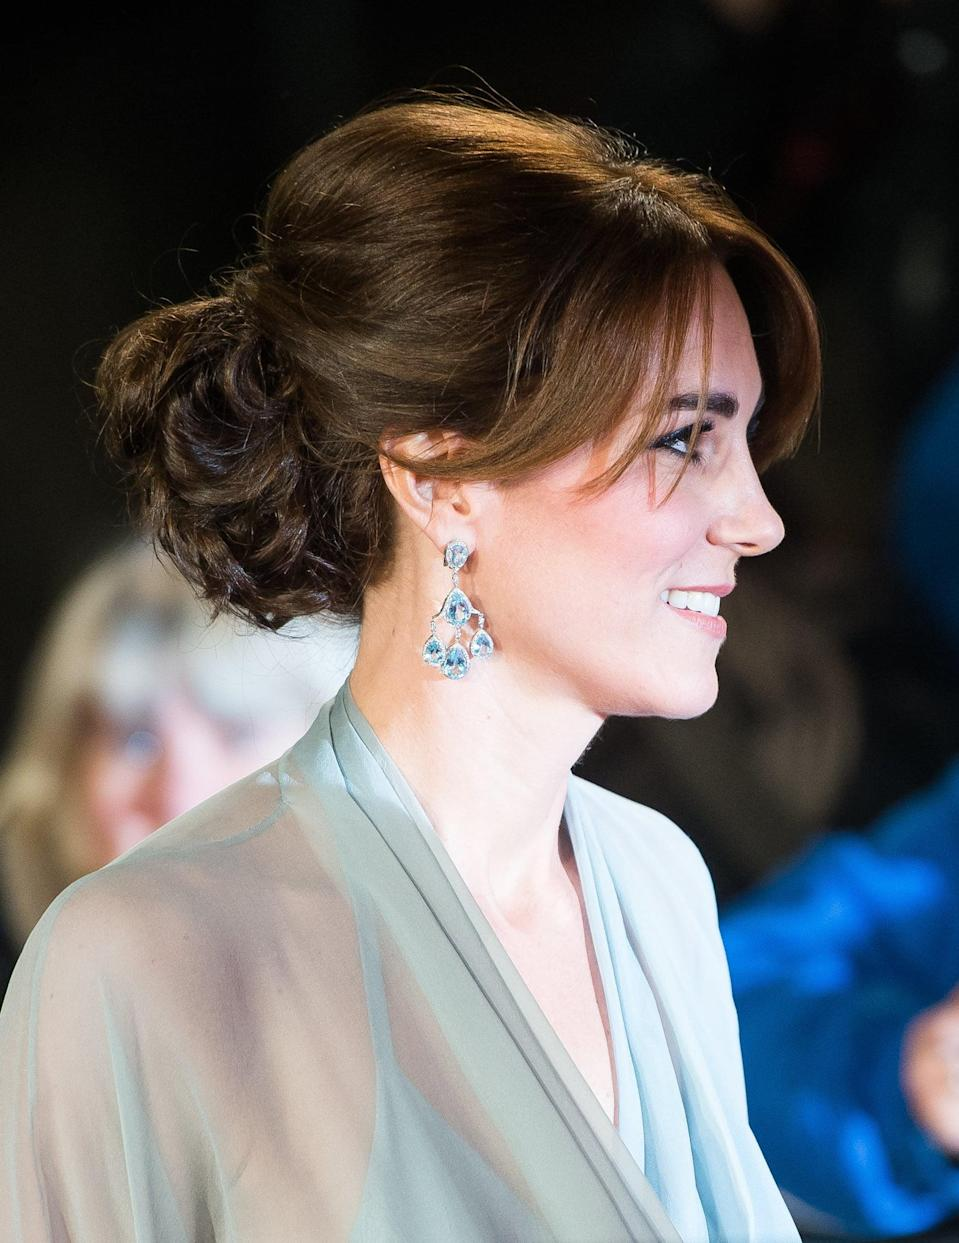 "<p>In case of ""the royals are just like us,"" Kate went and tried out bangs for a bit. Unlike the rest of us, she's got a professional hairstylist on call who can style them for her and iron out all the cowlicks. Regardless, her mid-length fringe really suits her, worn here for an event at Royal Albert `hall with a middle part and a low, curly updo. </p>"